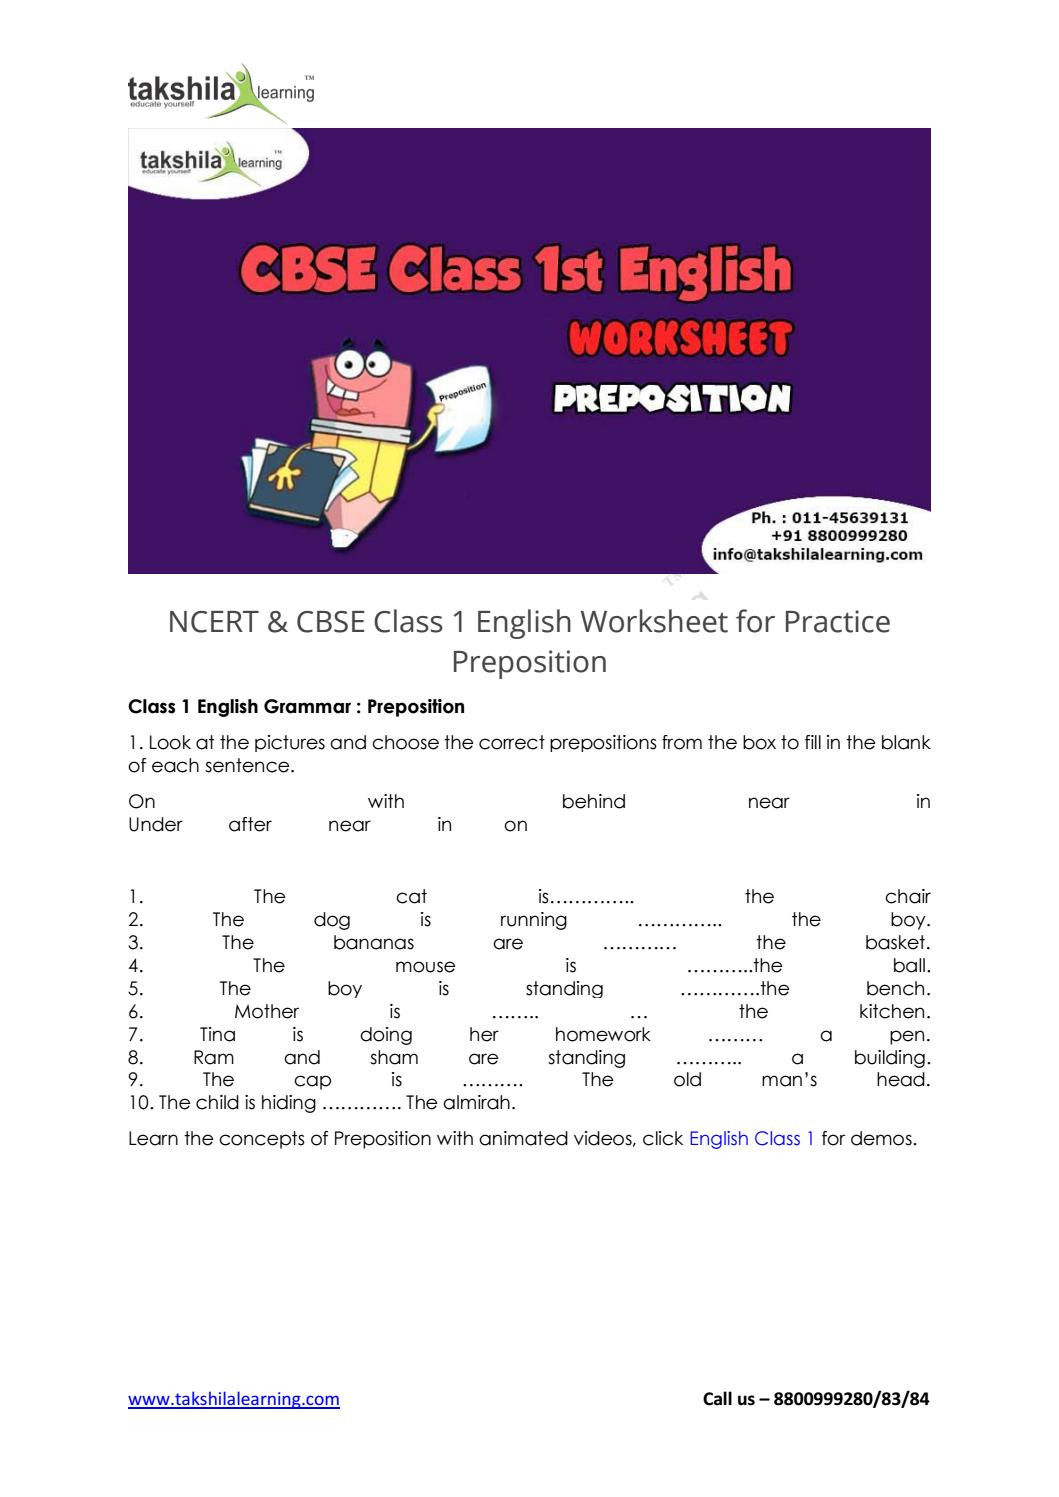 hight resolution of NCERT \u0026 CBSE Class 1 English Worksheet for Practice Preposition by  Online_Education - issuu